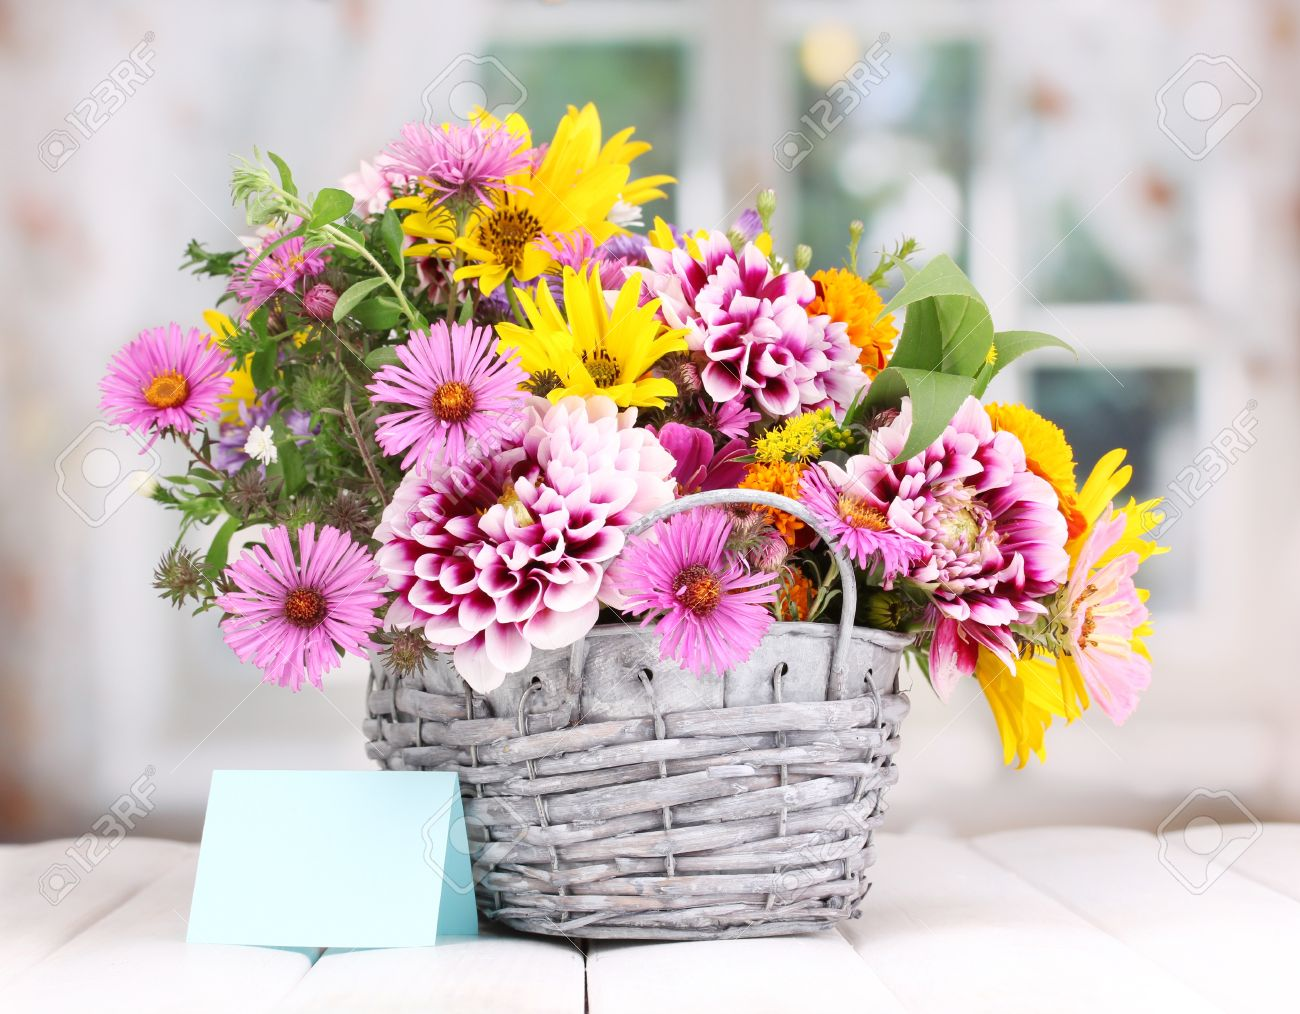 Beautiful Bouquet Of Bright Flowers In Basket On Wooden Table Stock